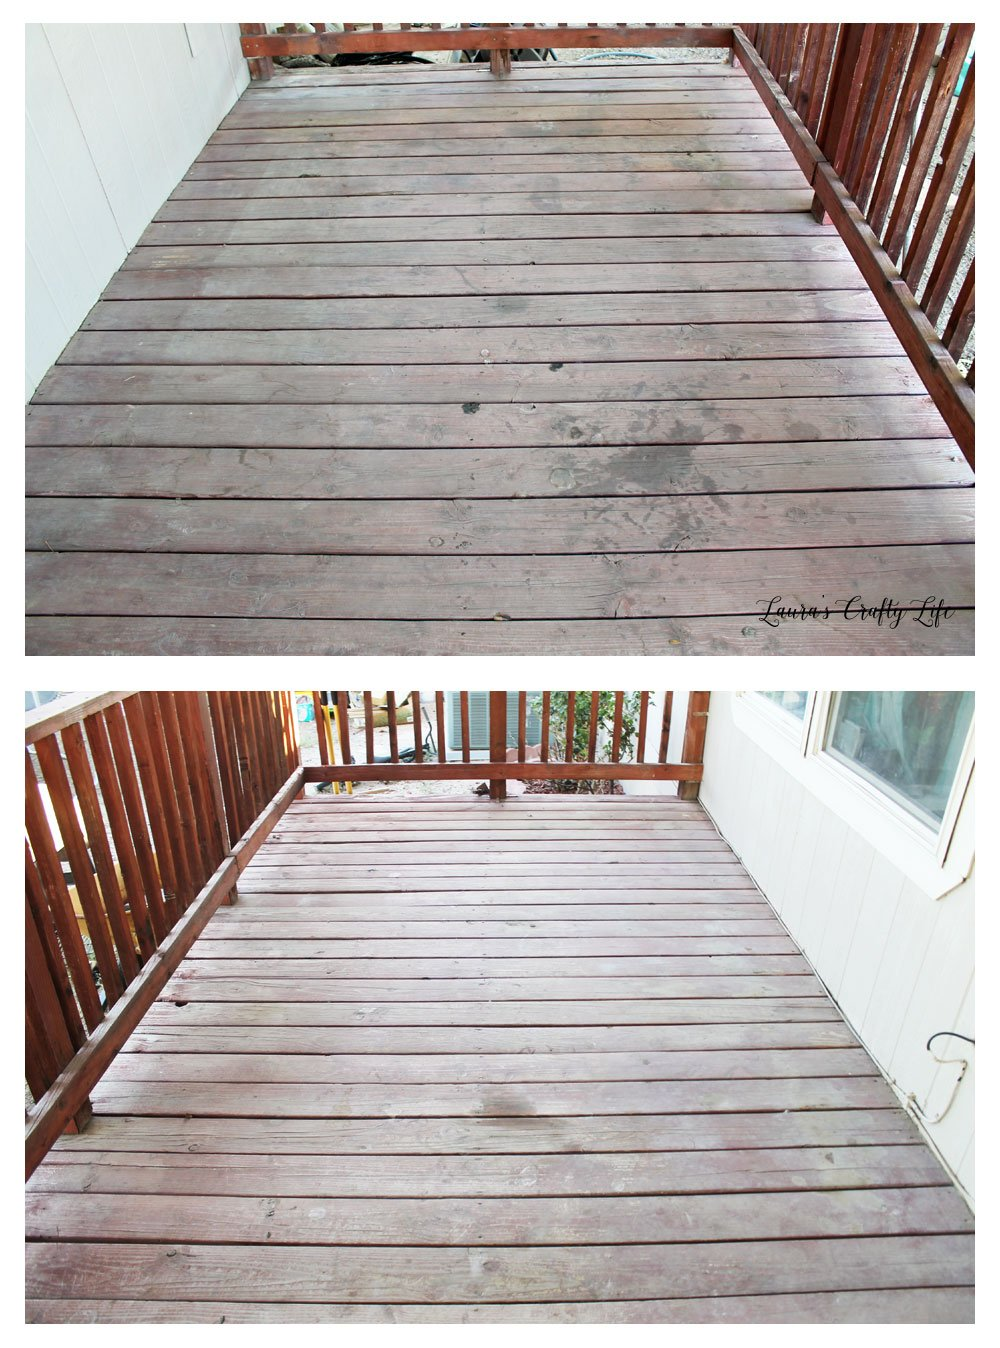 Deck before prep and stain